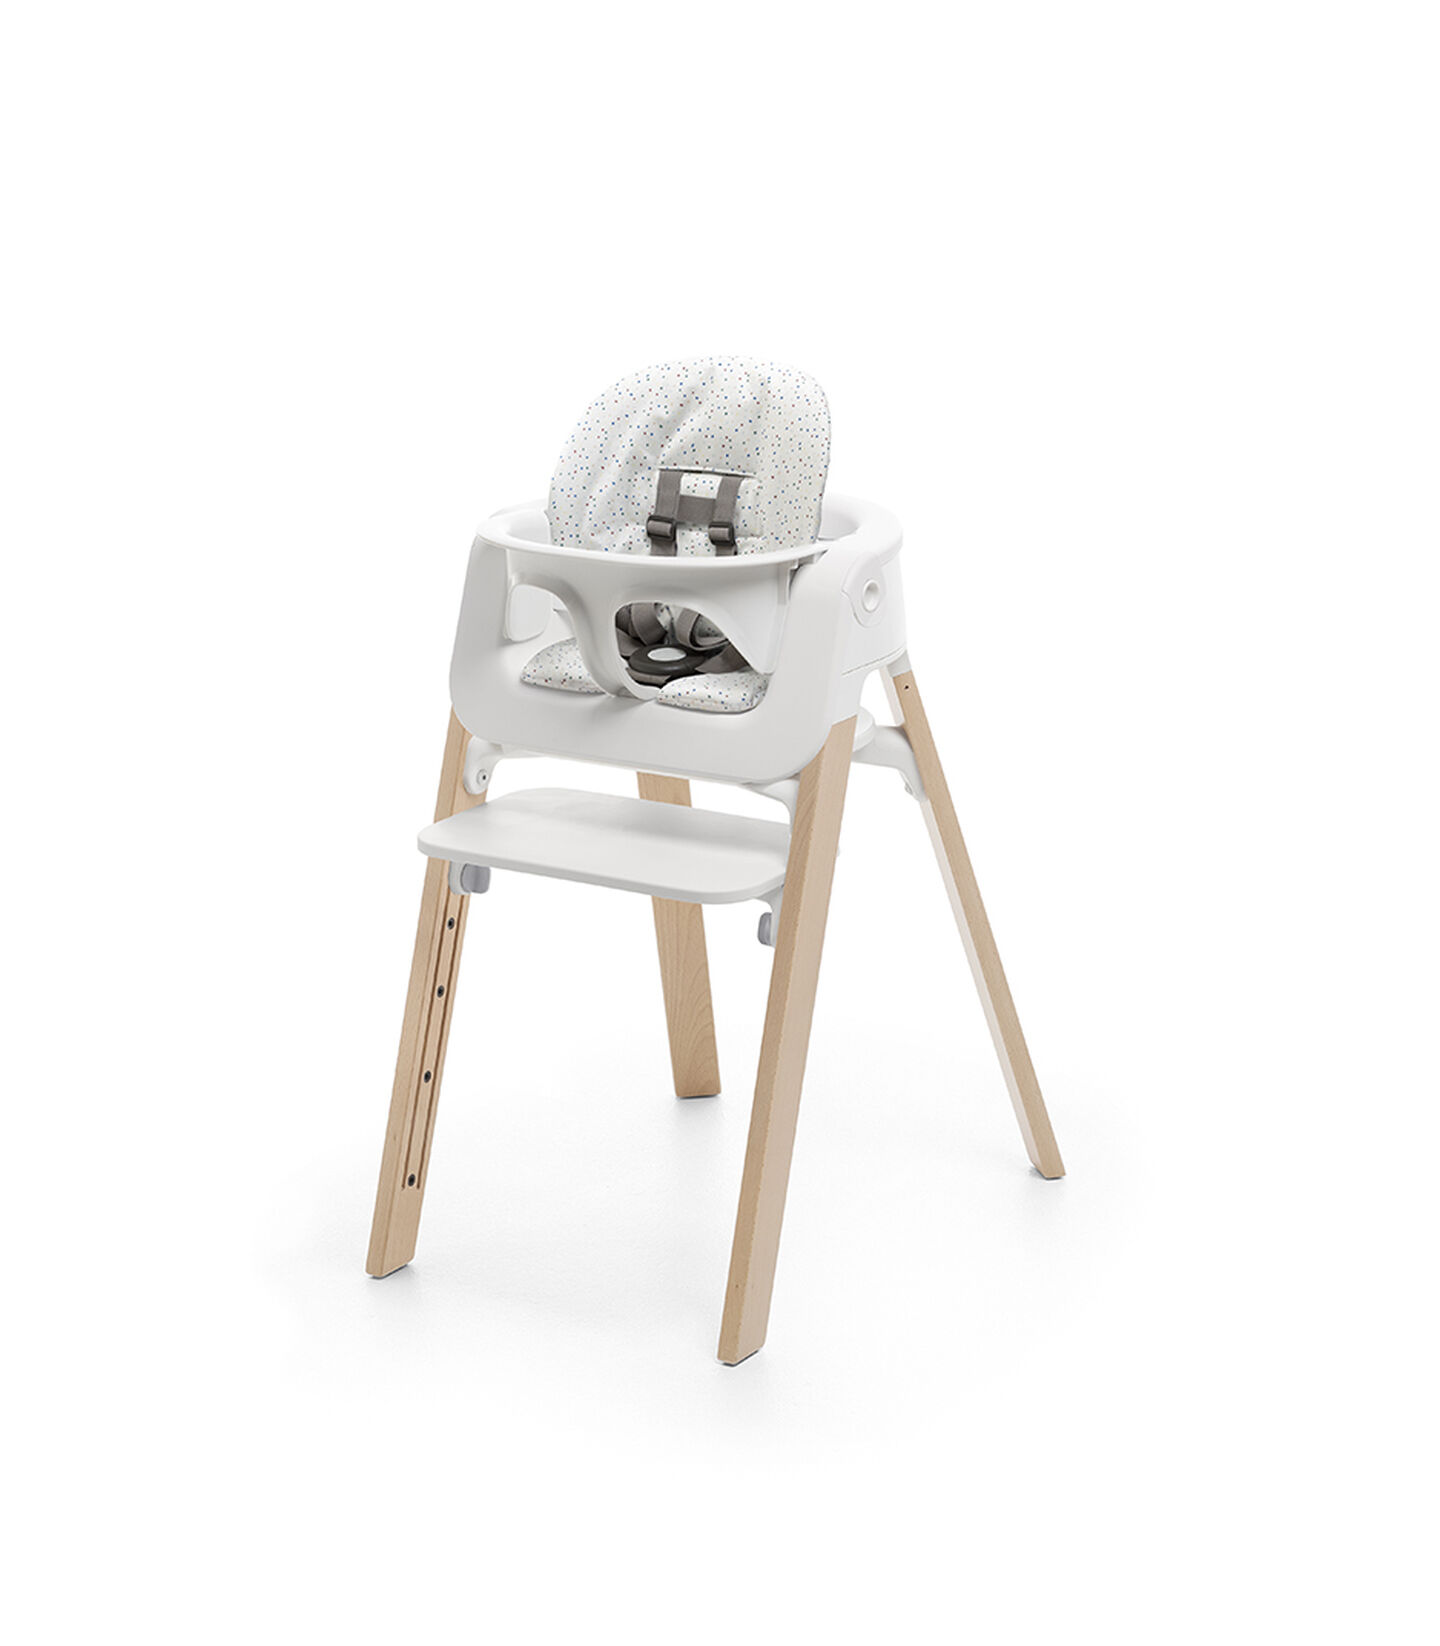 Stokke® Steps™ Natural, with Baby Set White and Cushion Soft Sprinkle.